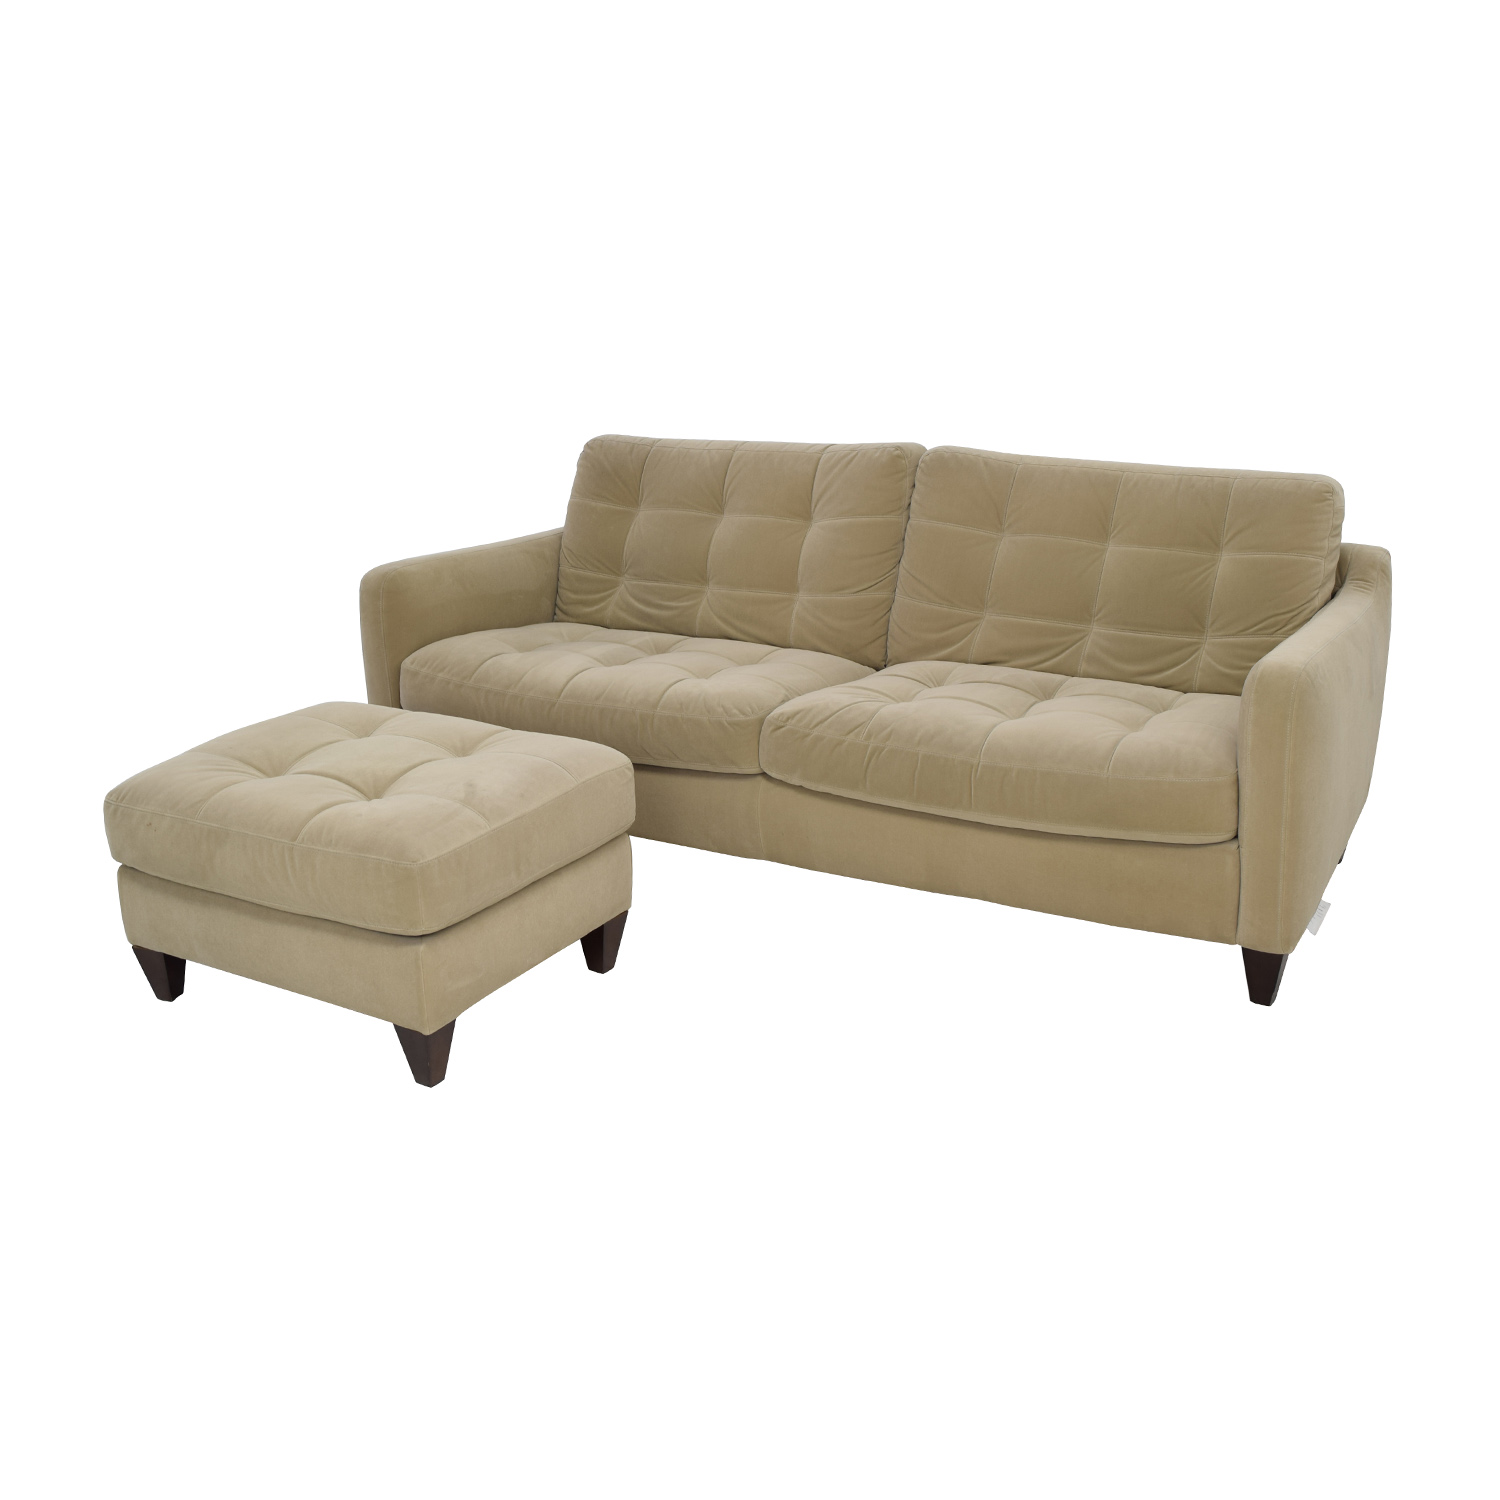 ... Natuzzi Beige Microfiber Tufted Couch And Ottoman Sale ...